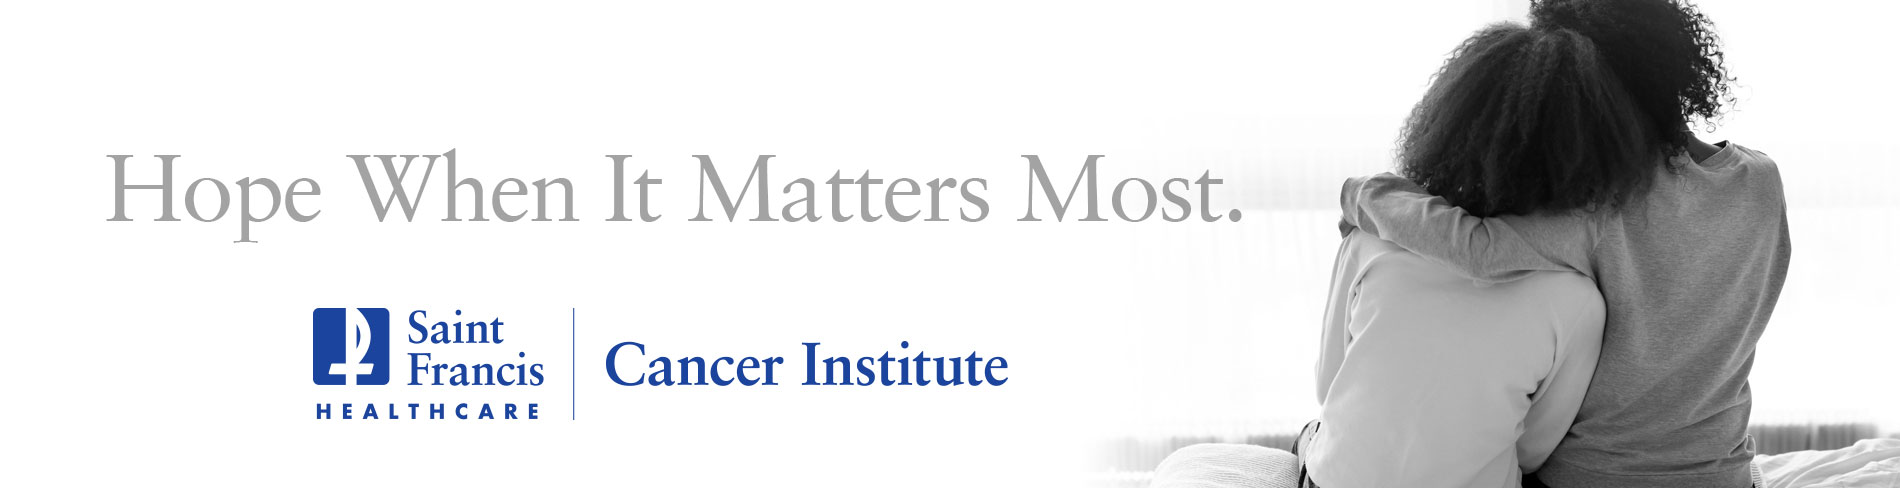 Hope When It Matters Most. Here For You. Saint Francis Cancer Institute.